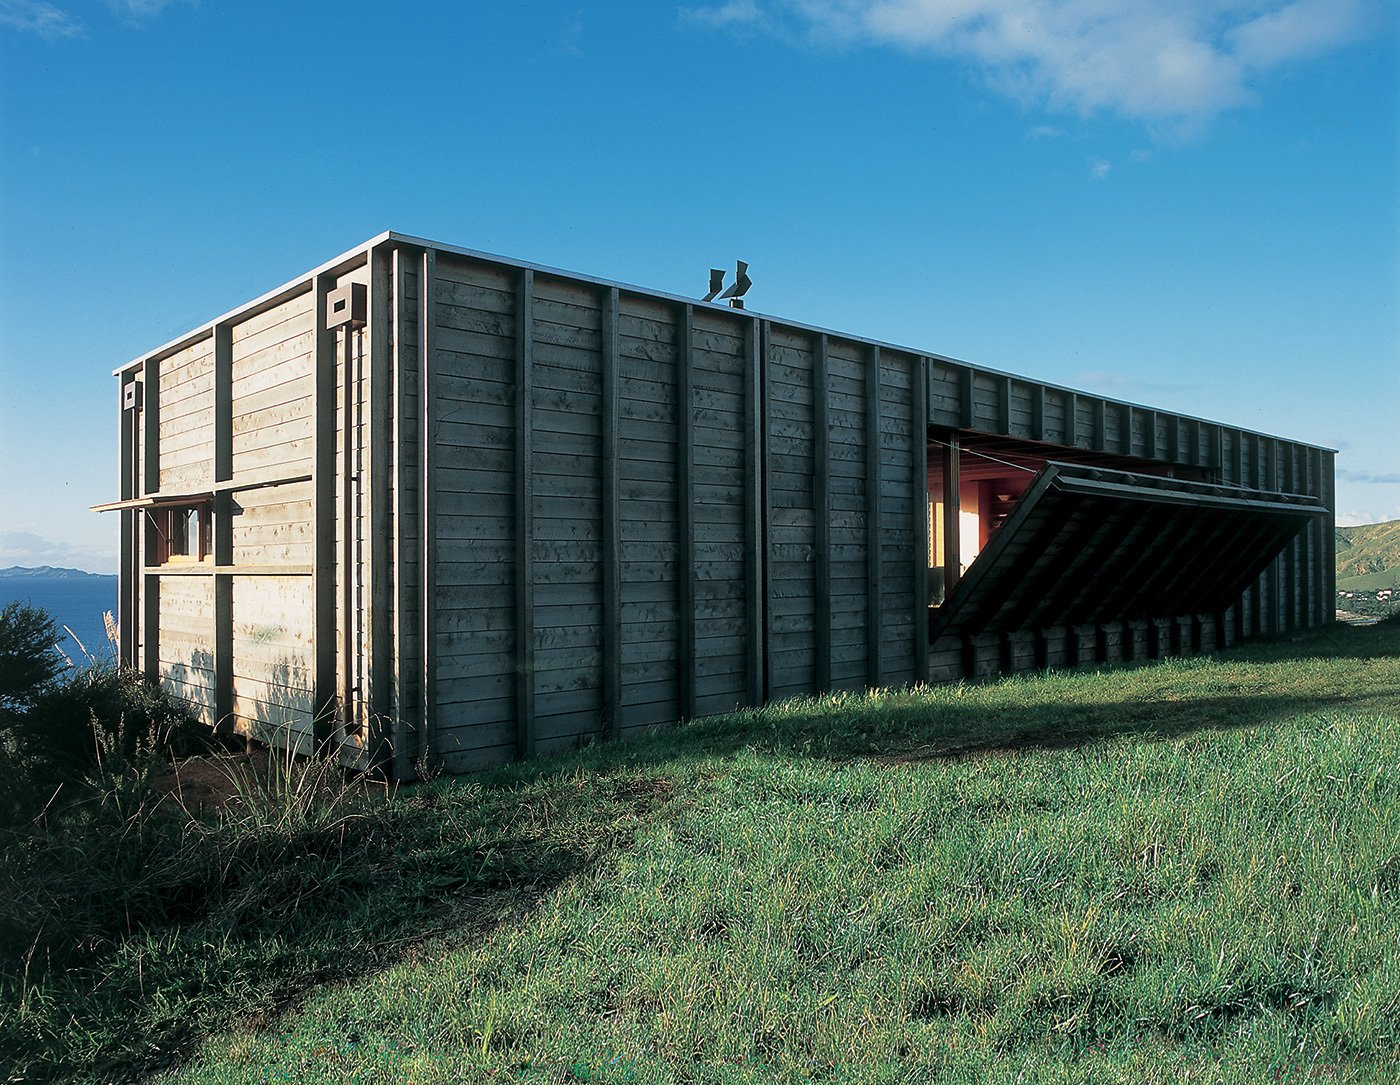 10 beautiful island-style shipping container homes - dwell